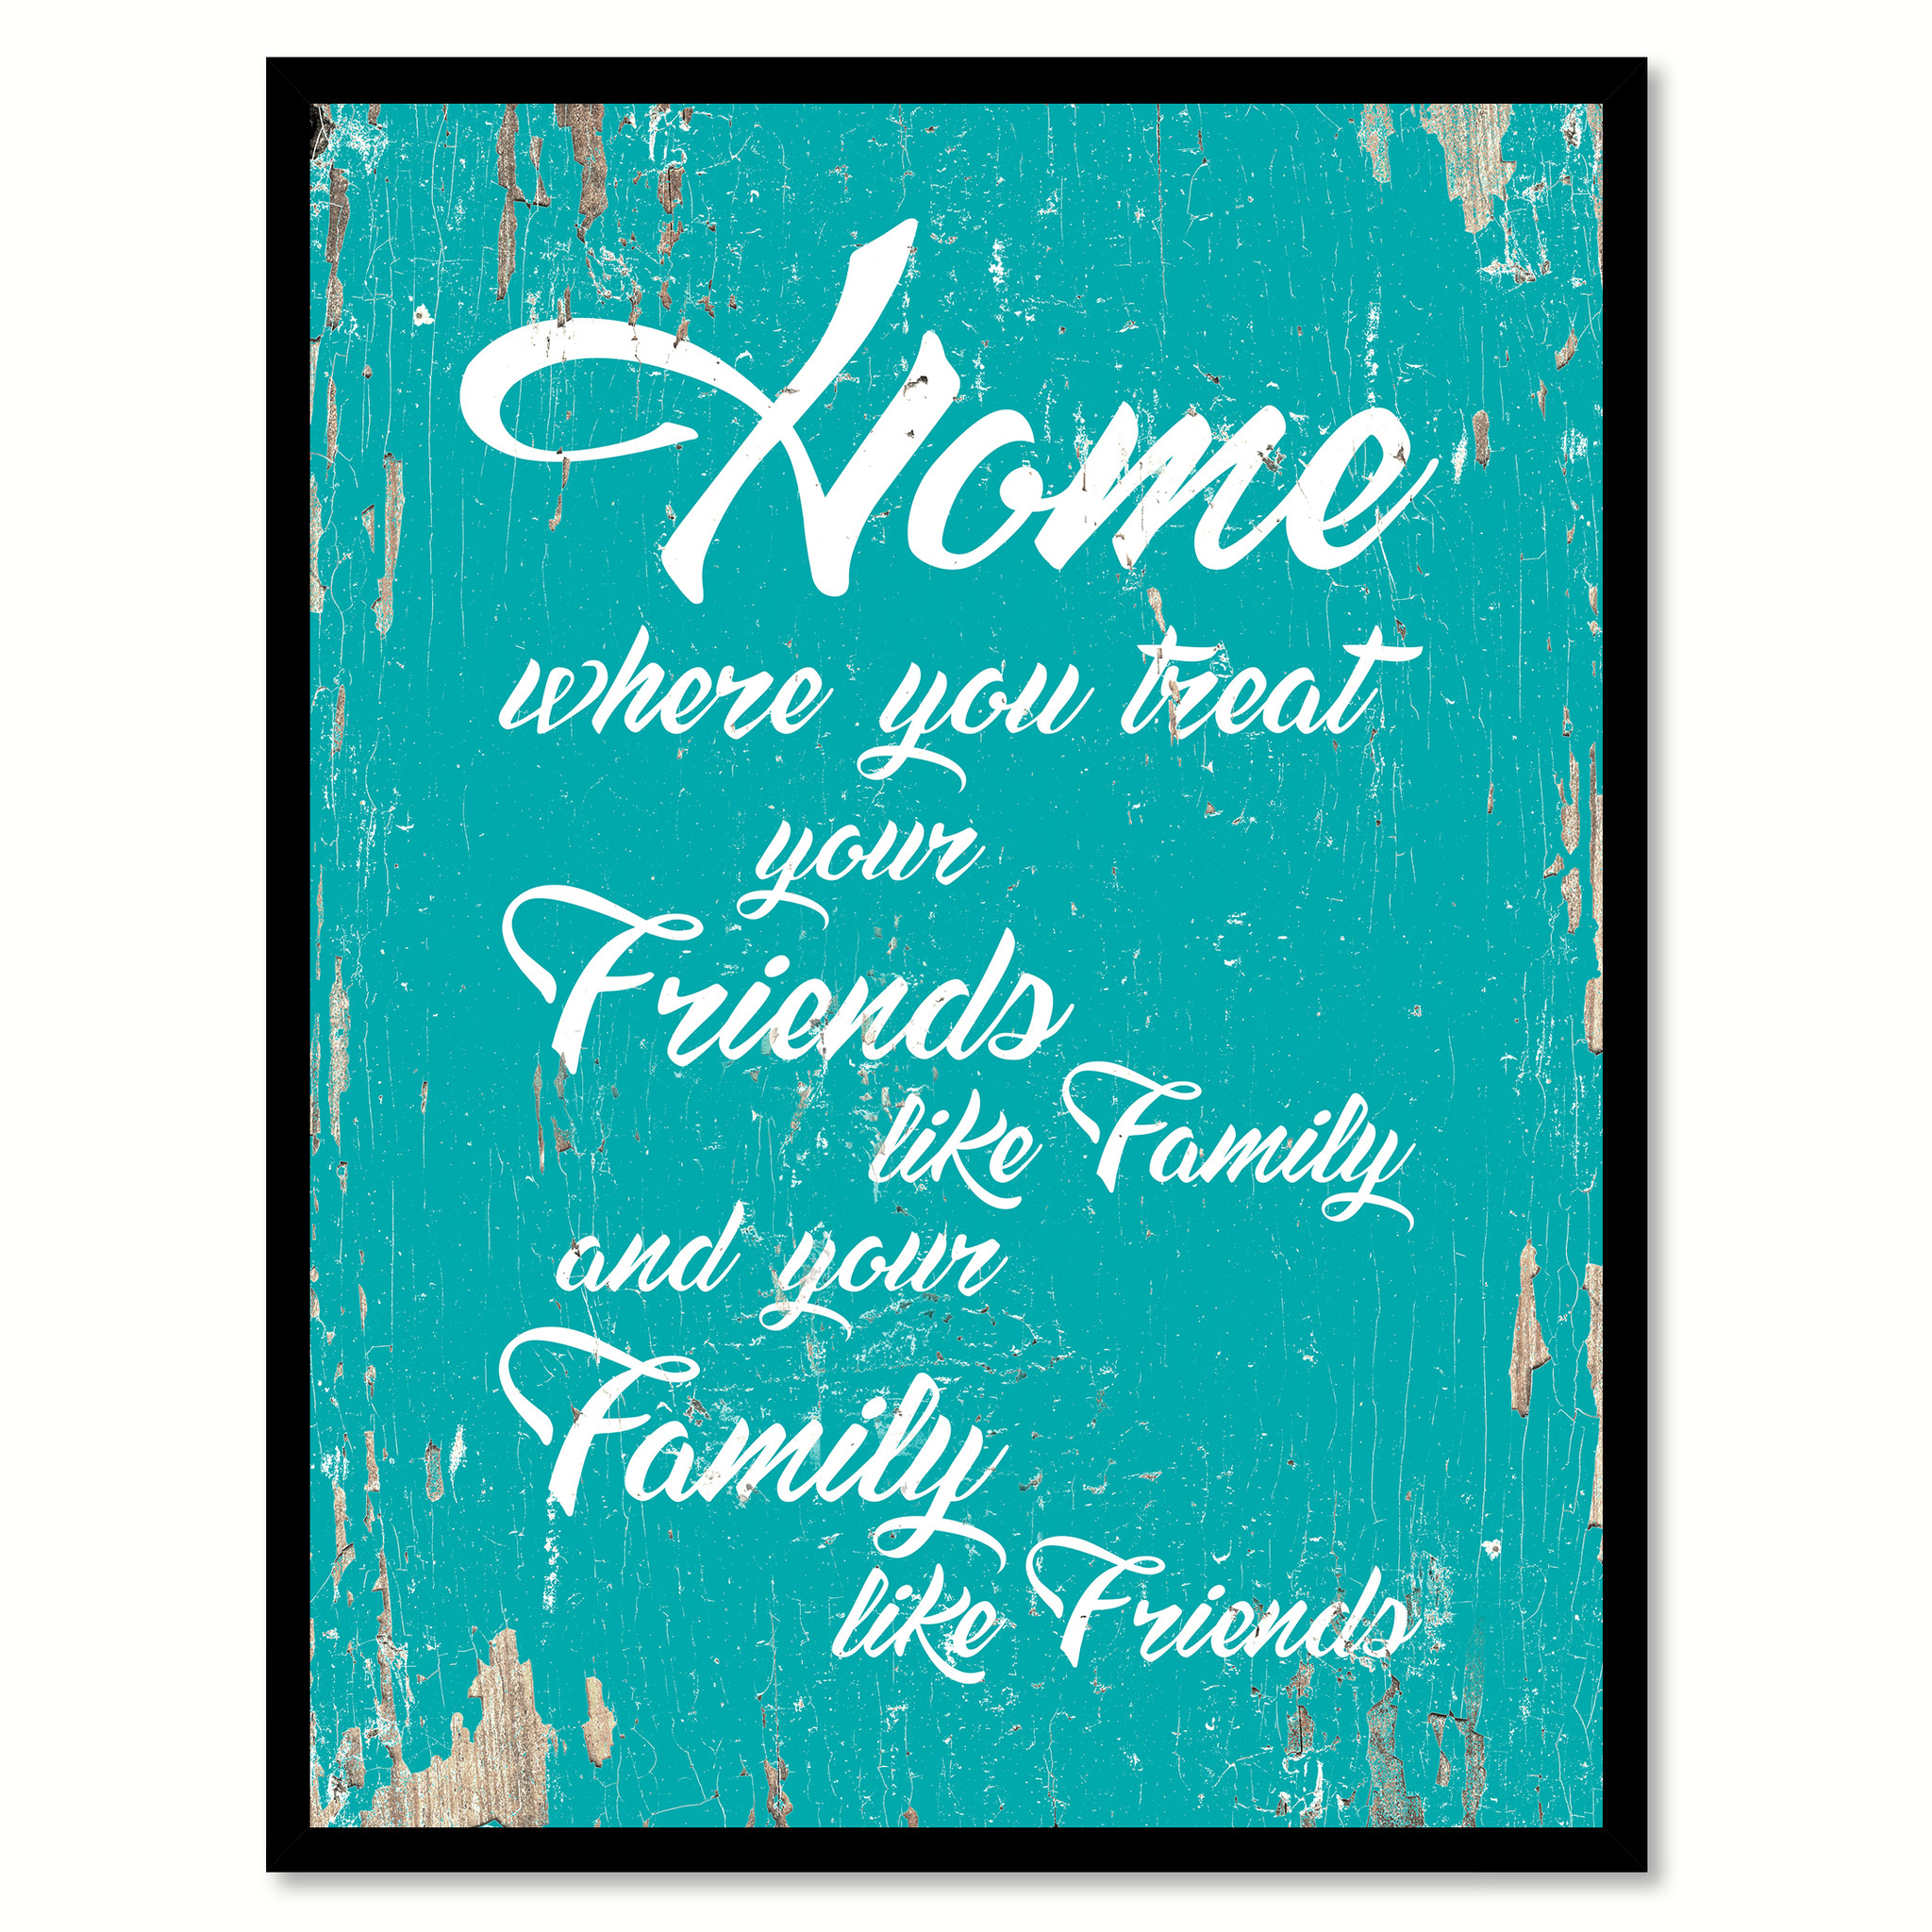 "Home Where You Treat Your Friends Like Family Quote Saying Canvas Print with Picture Frame Home Decor Wall Art Gift Ideas 111753 - 7""x9\"""